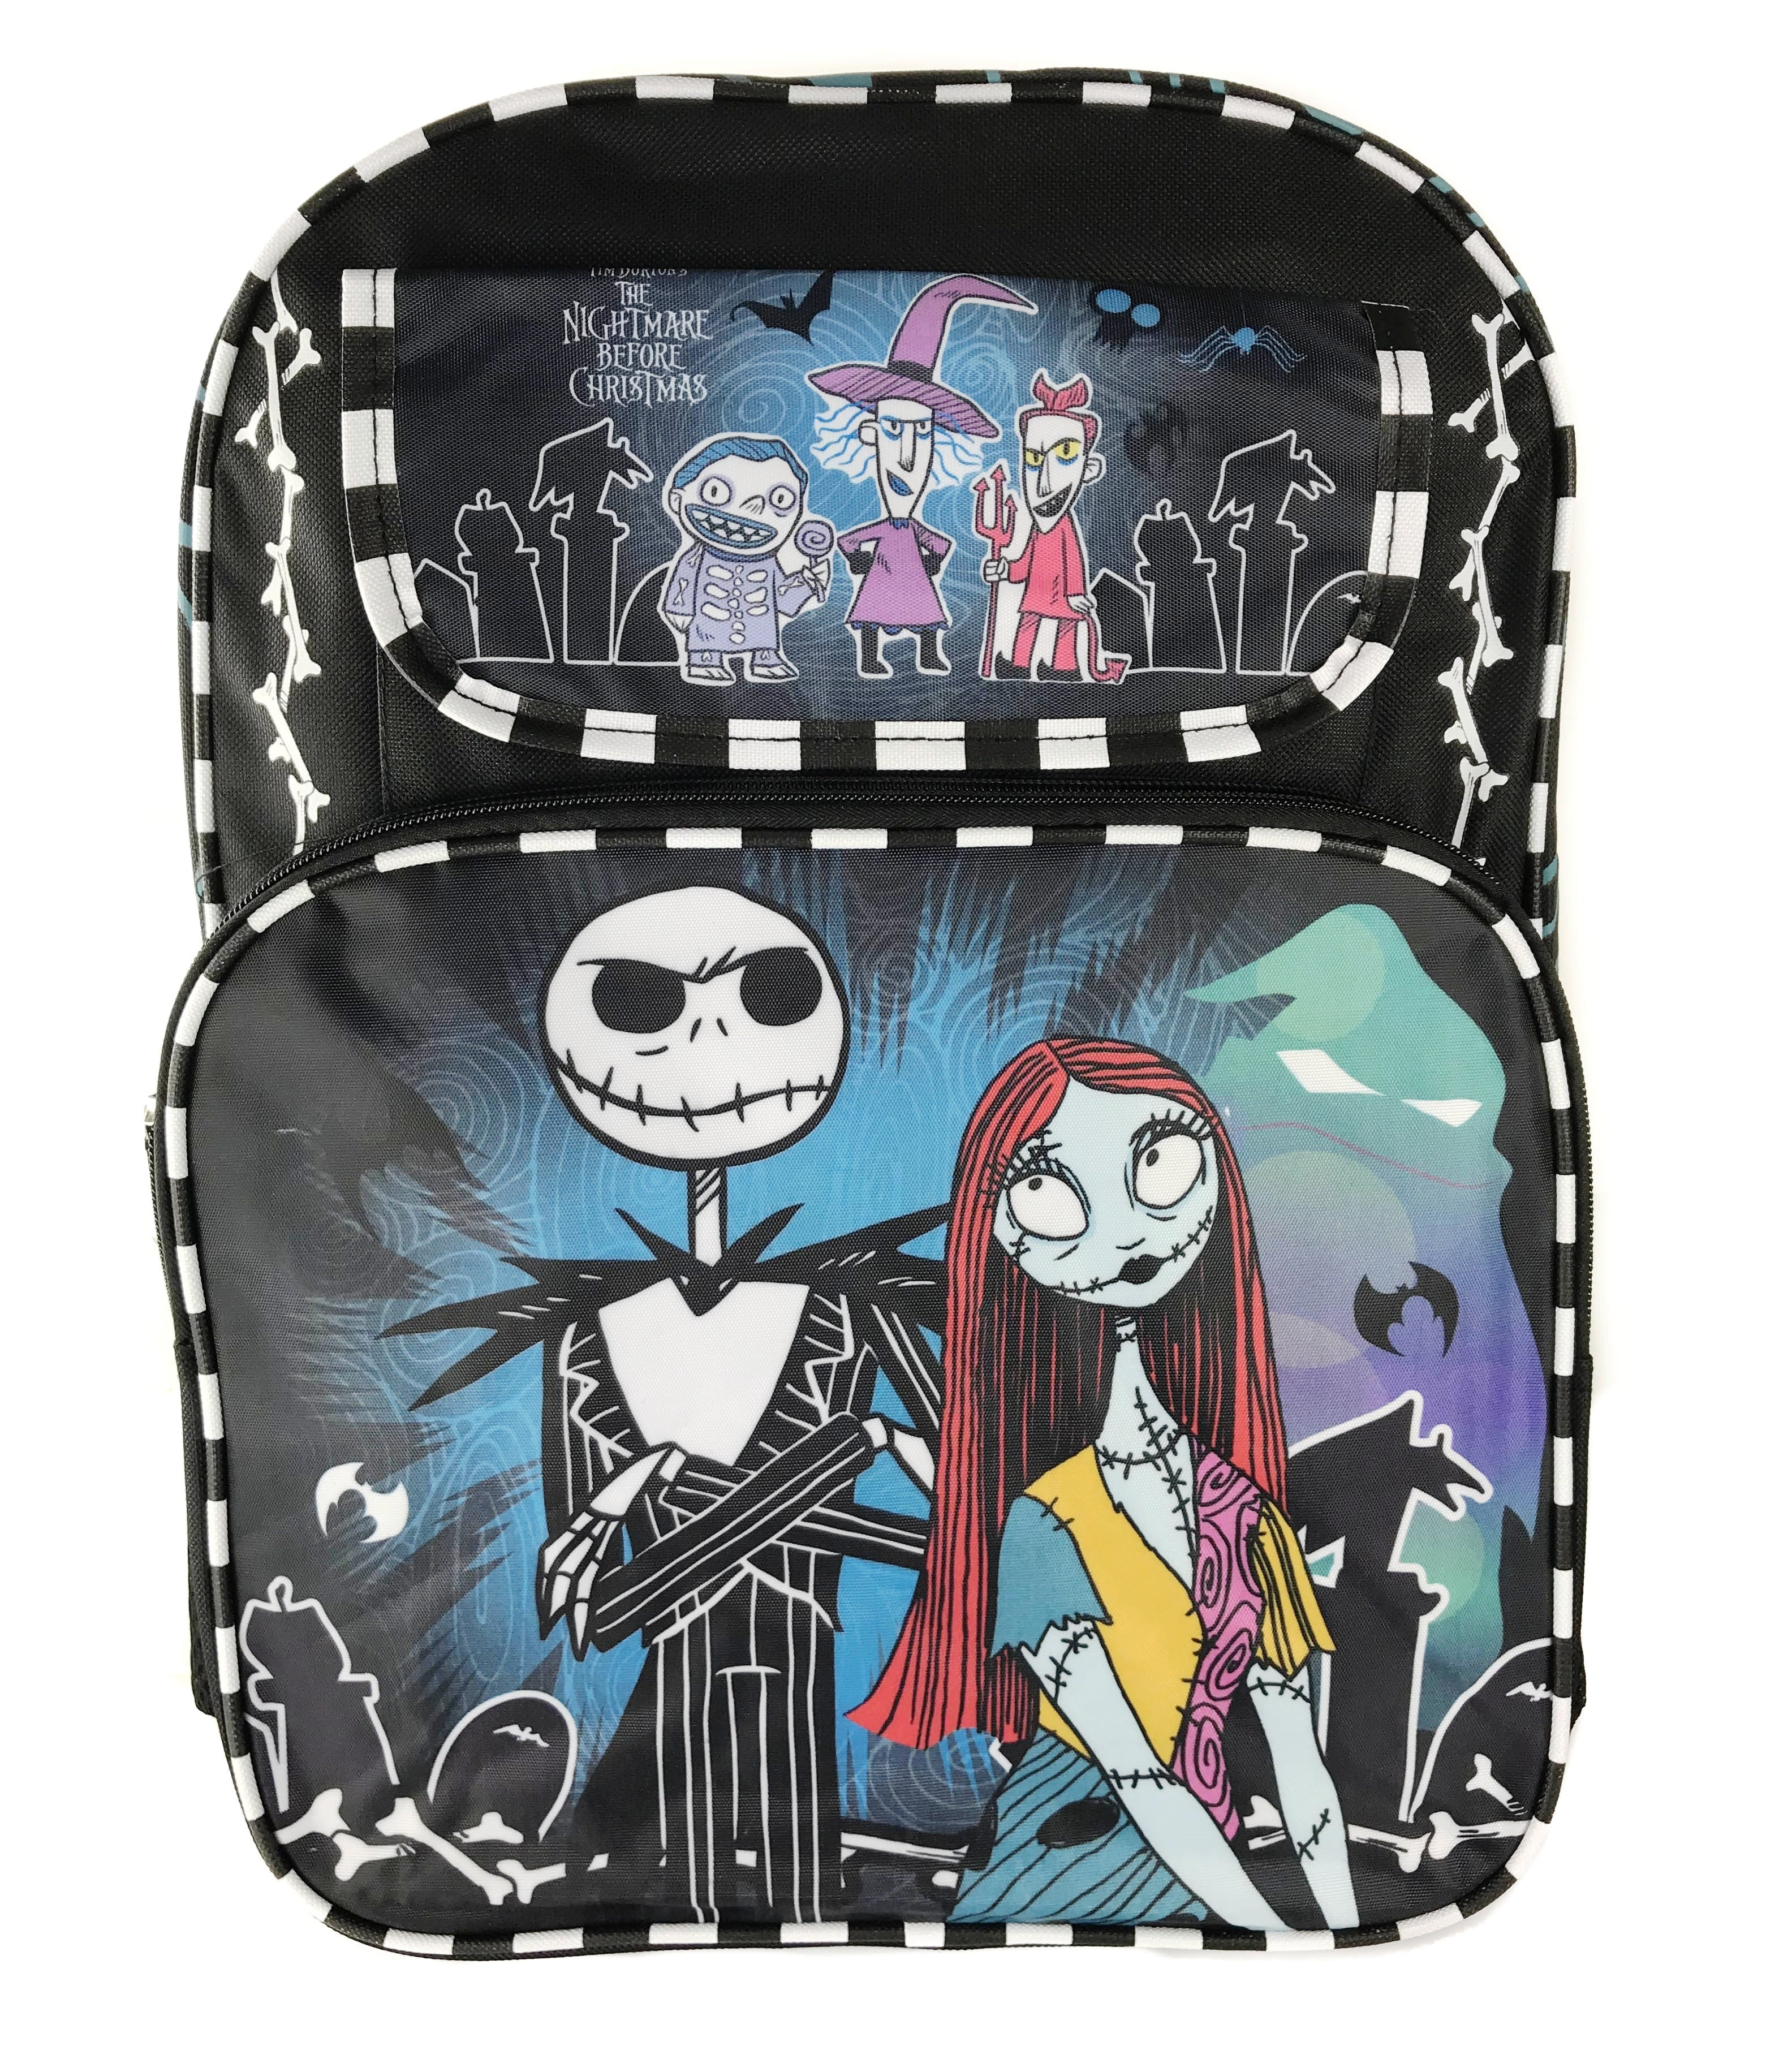 the nightmare before christmas backpack - The Nightmare Before Christmas Backpack